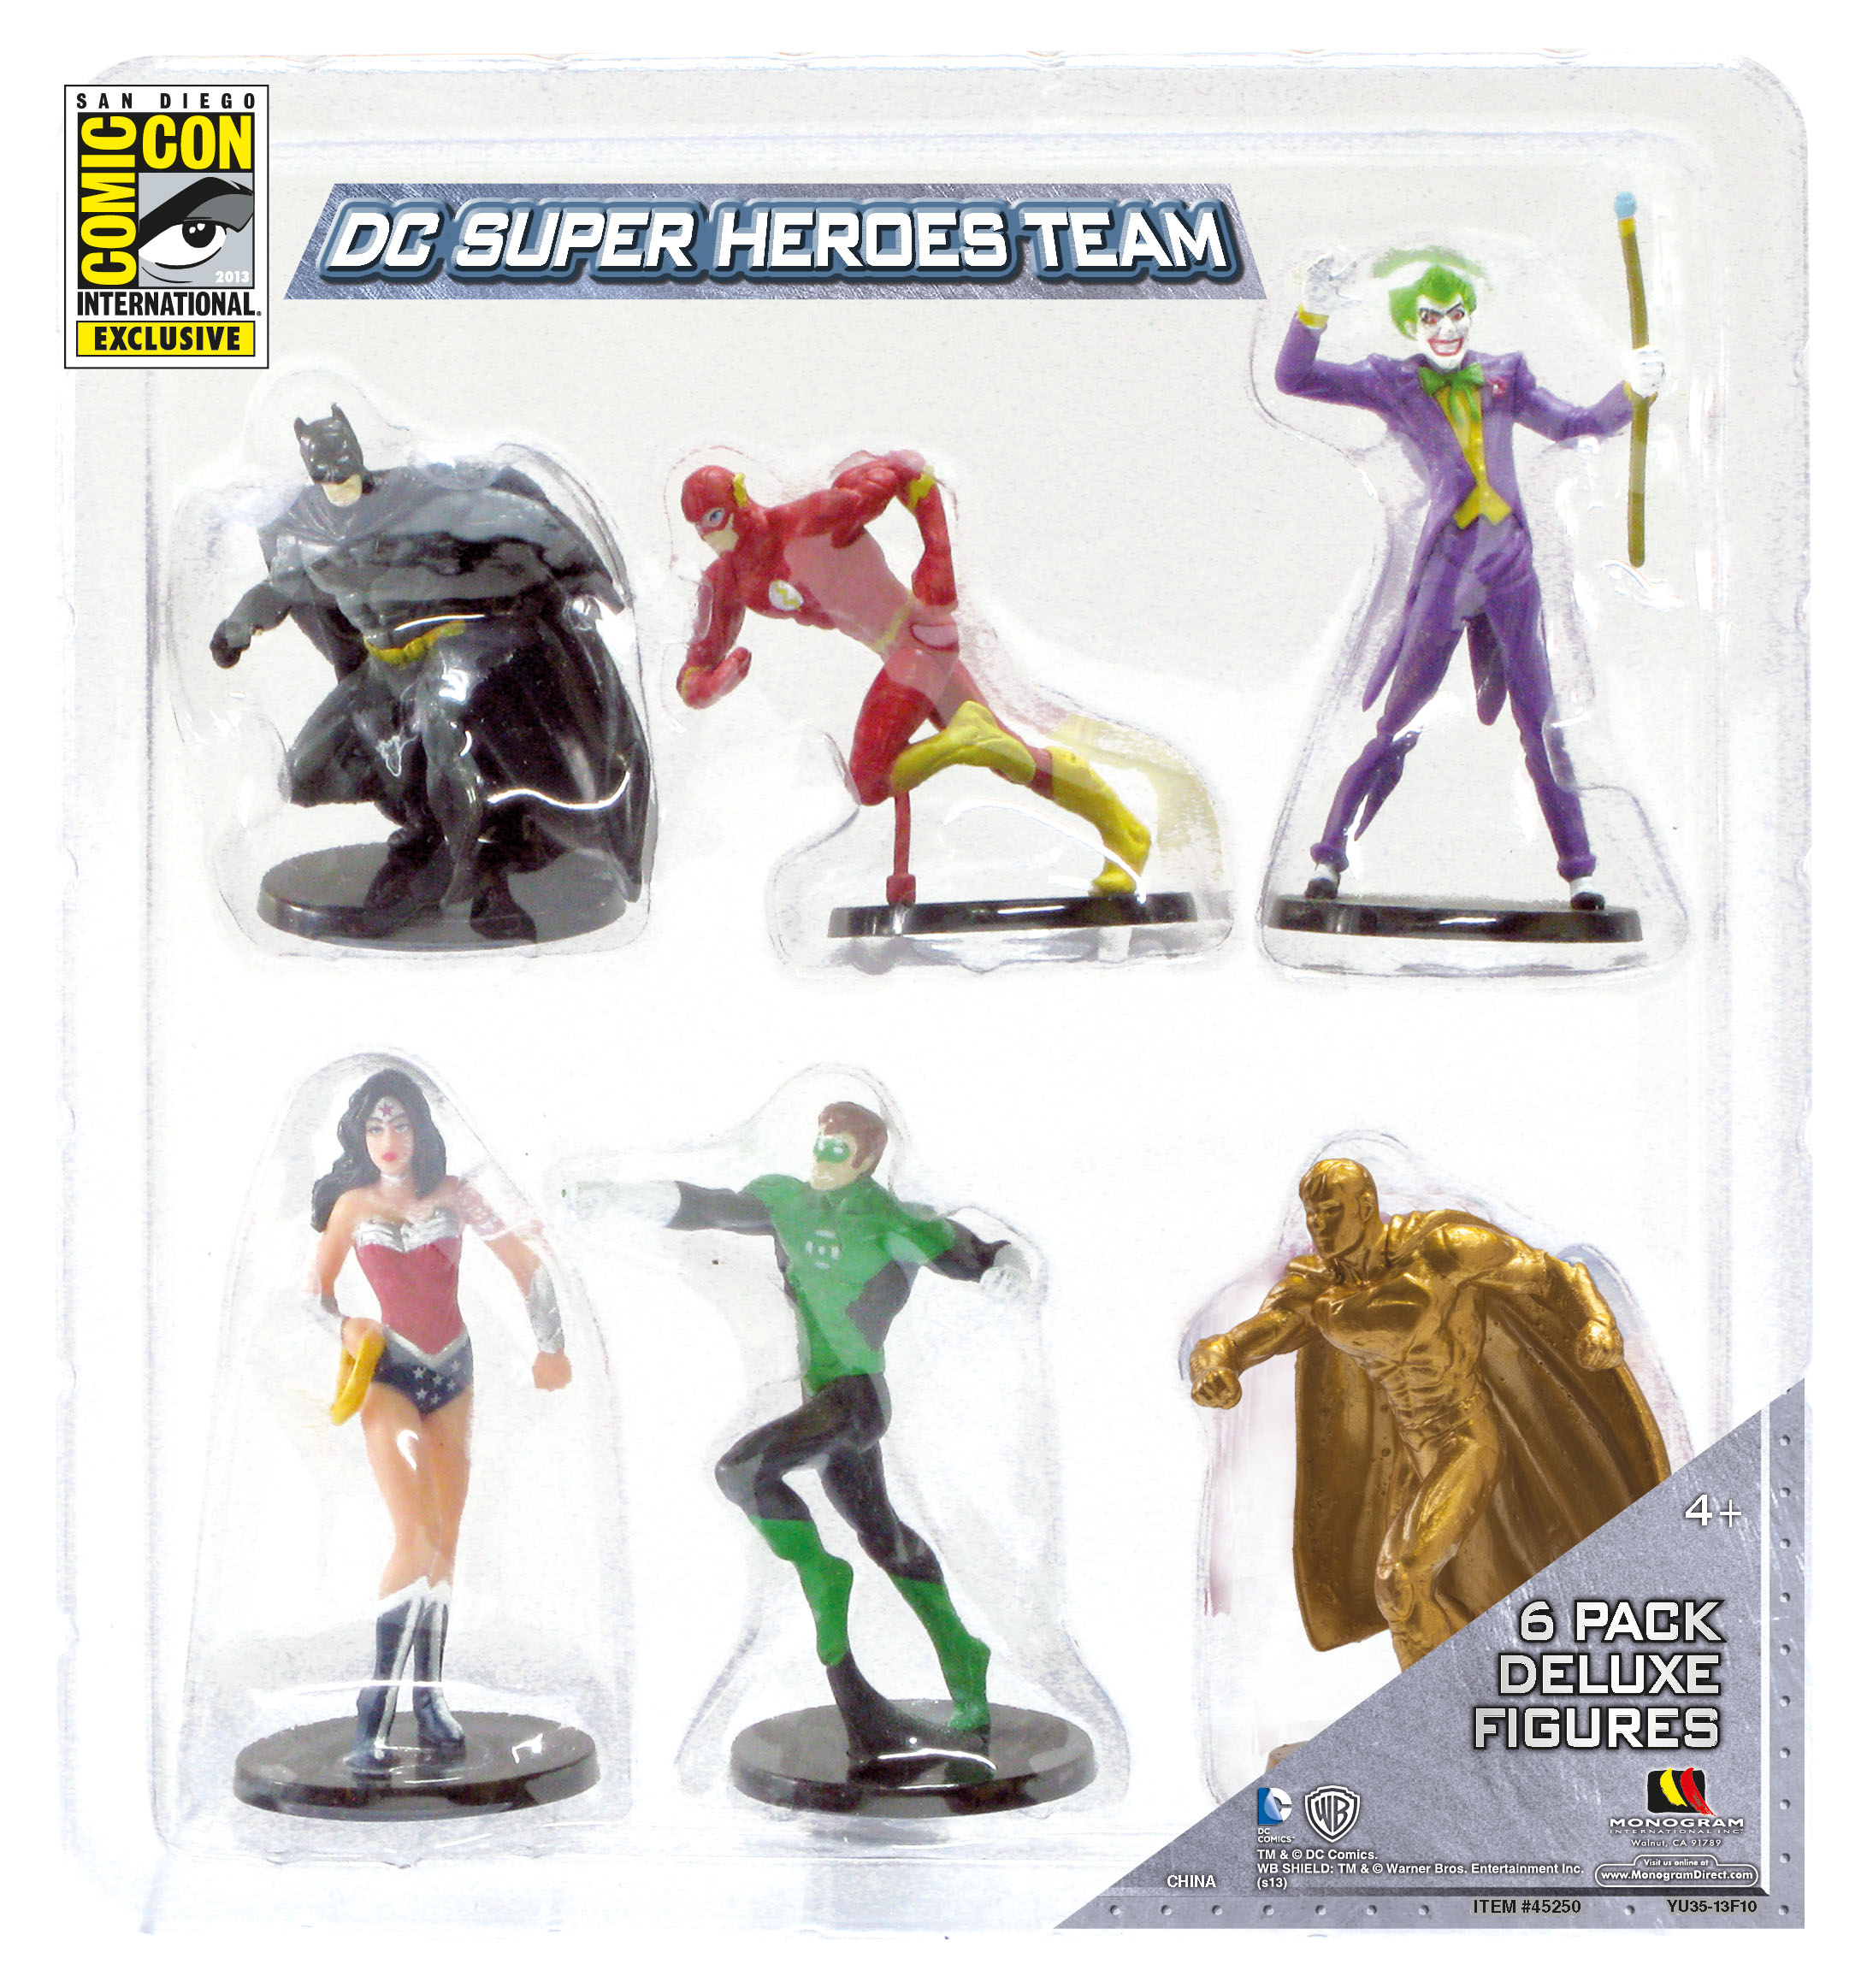 Monogram DC Comics PVC 6 Pack SDCC